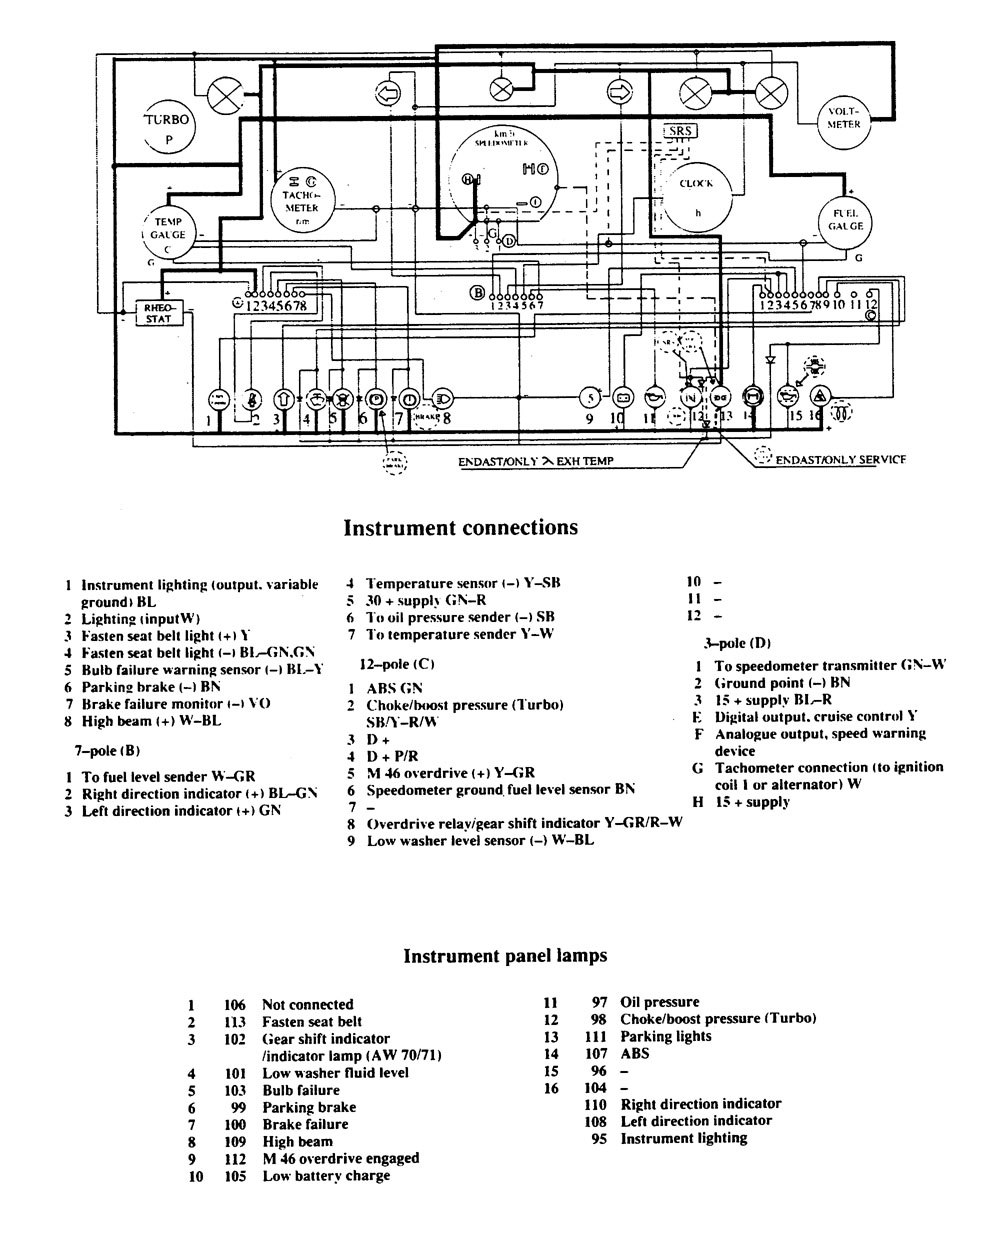 1992 Dodge Spirit Wiring Diagram As Well Volvo 940 Fuse Box Location